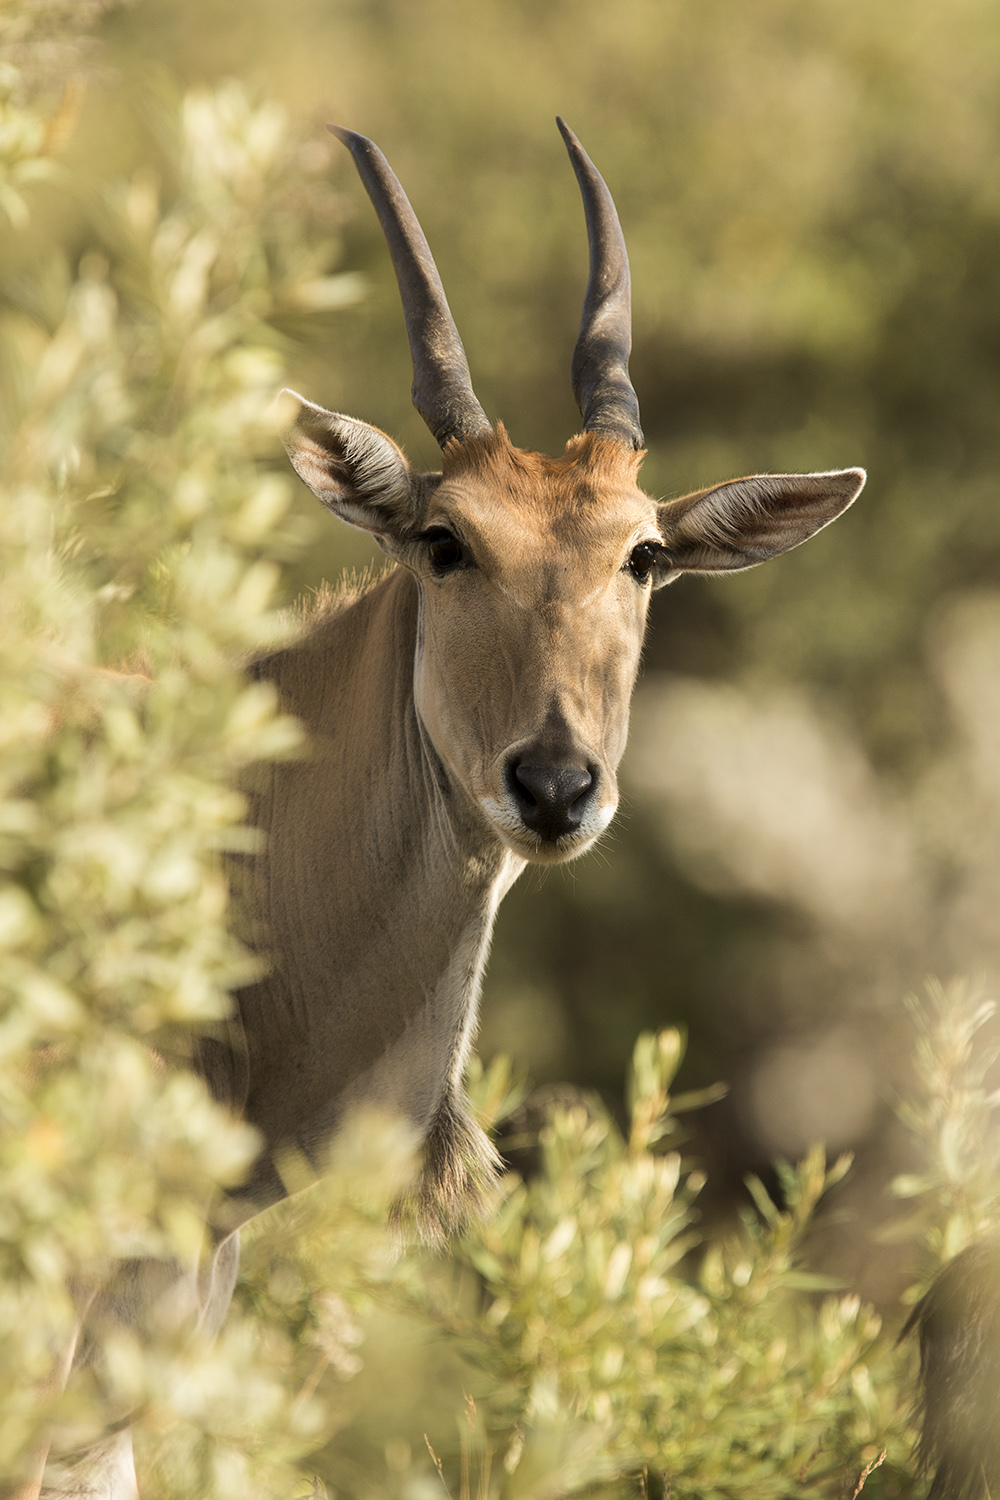 Eland stareing at photographer